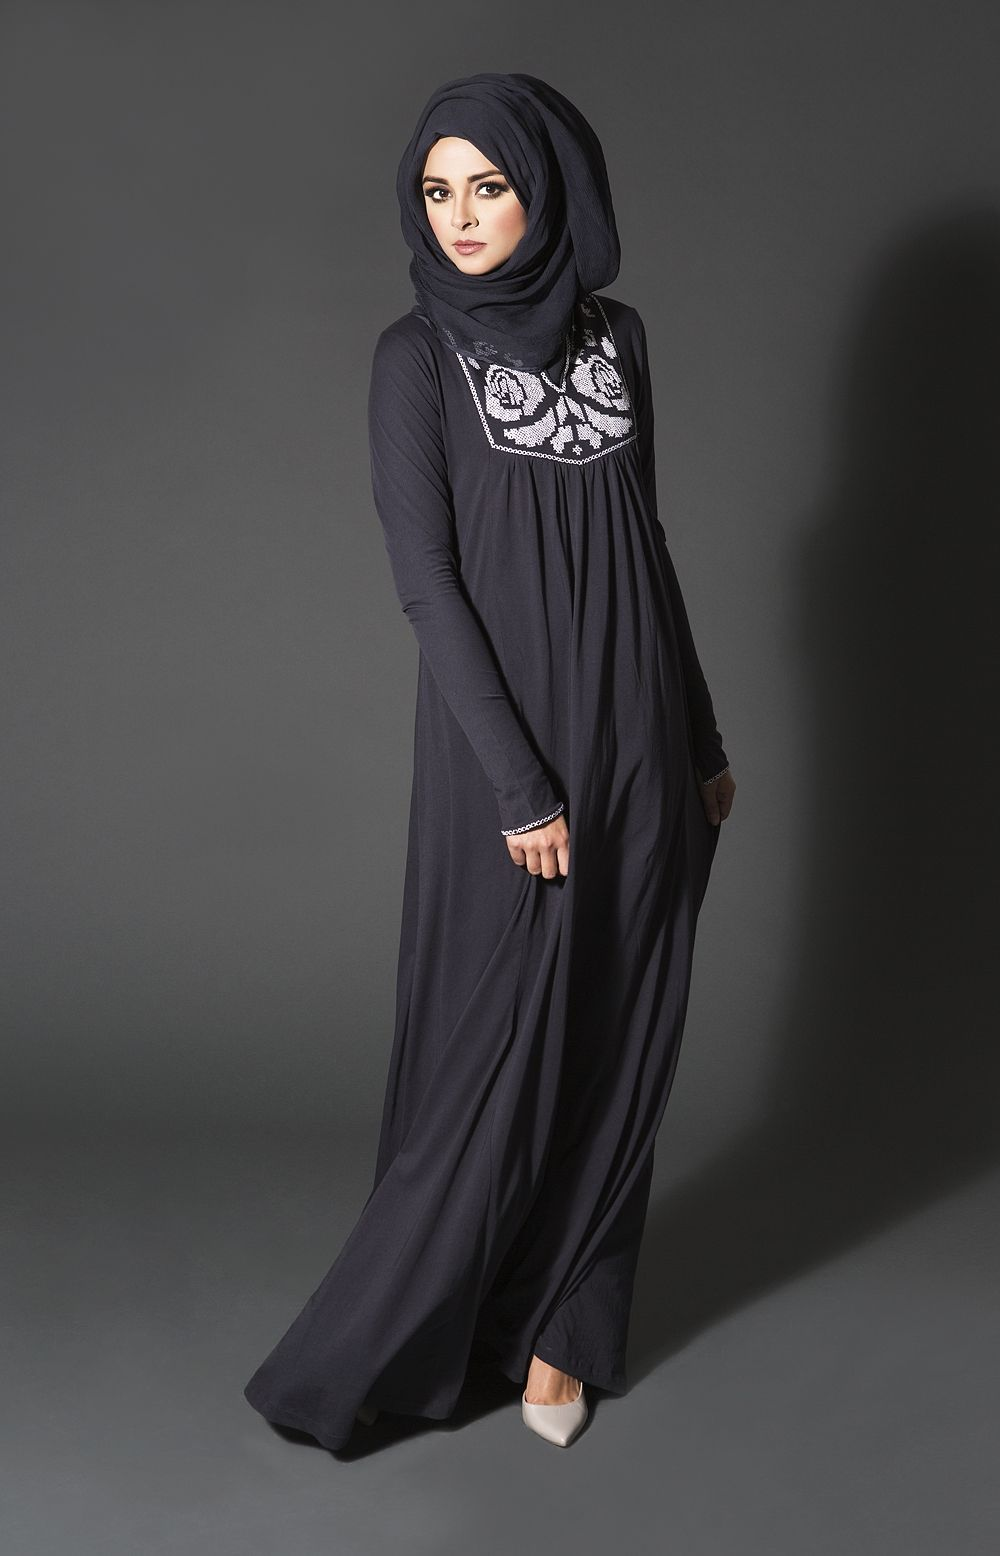 aab Cross Abaya Rose Stitch embroideryedit abaya Holic xq7H1B